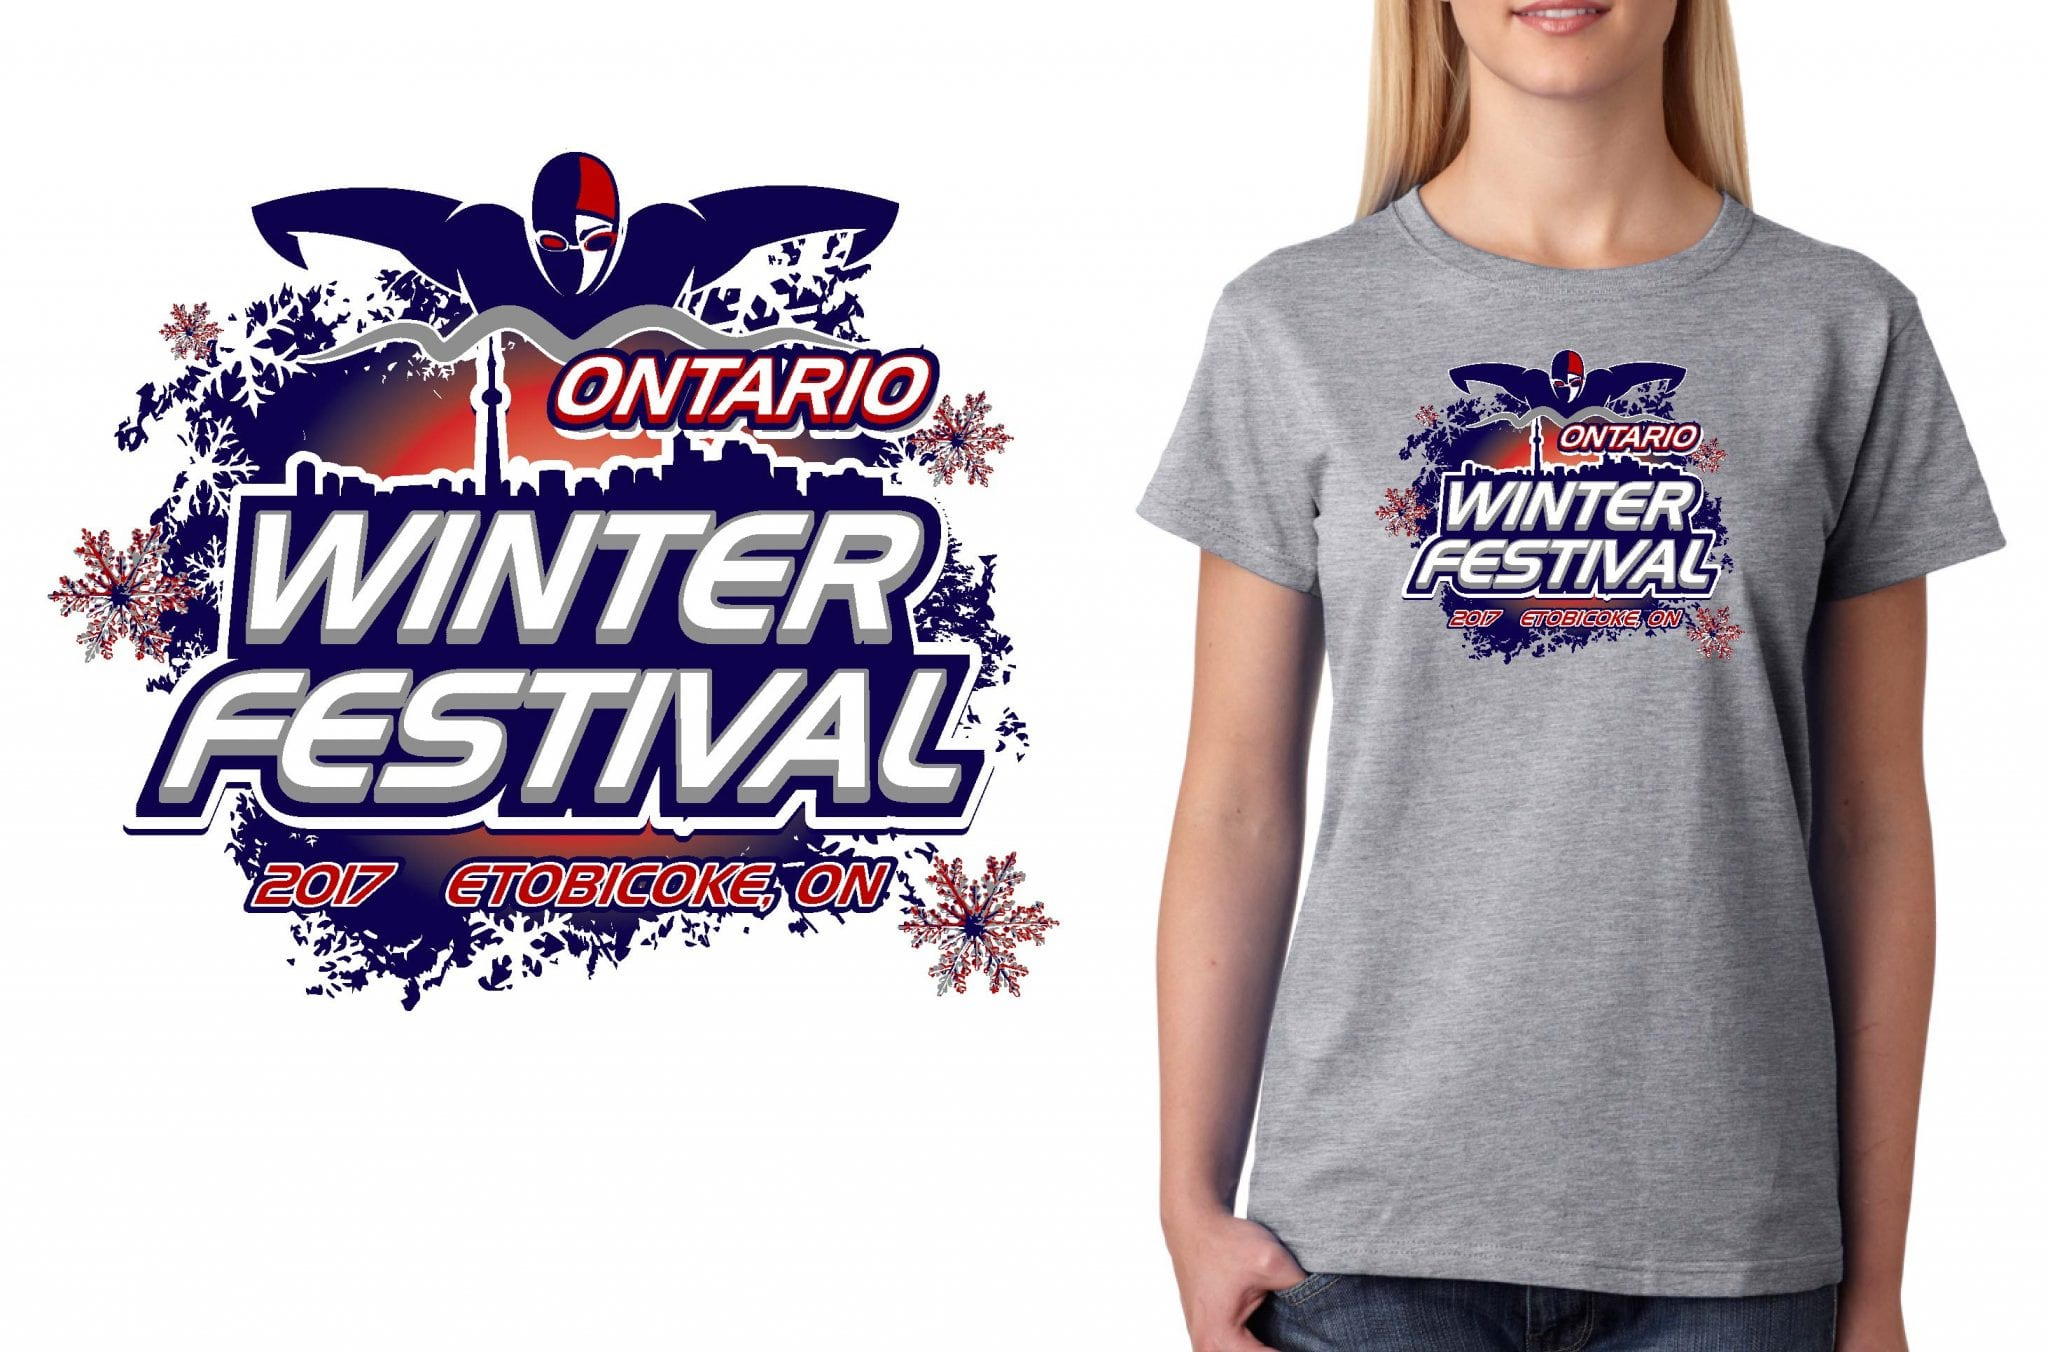 SWIMMING T SHIRT LOGO DESIGN Swim-Ontario-Winter-Festival BY UrArtStudio